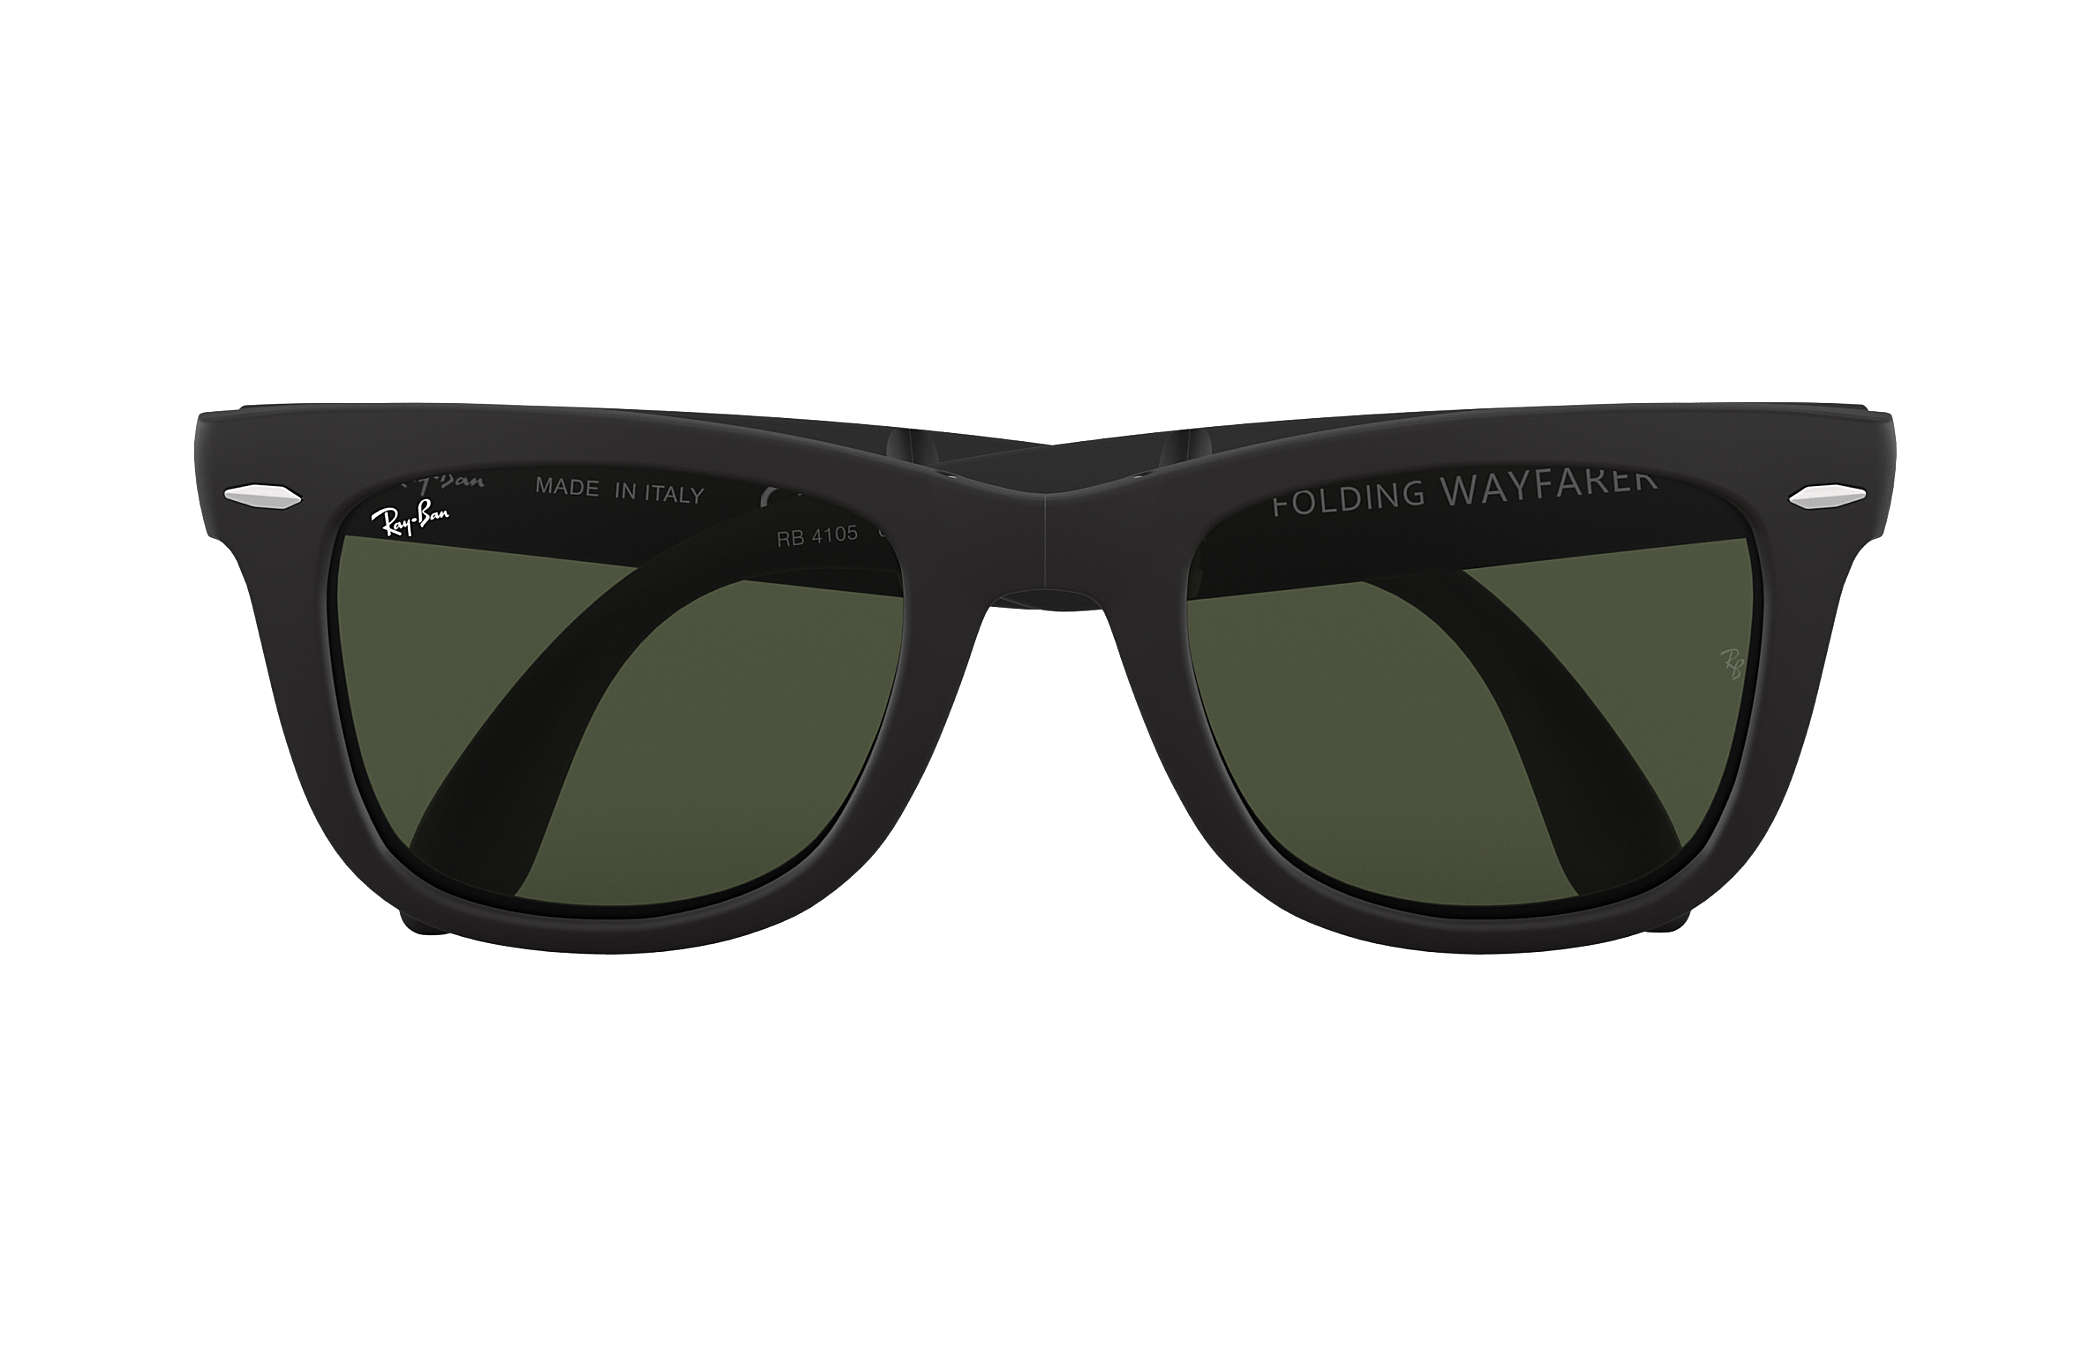 Classic Ray Out Check Folding The Wayfarer At ym0wnvN8O